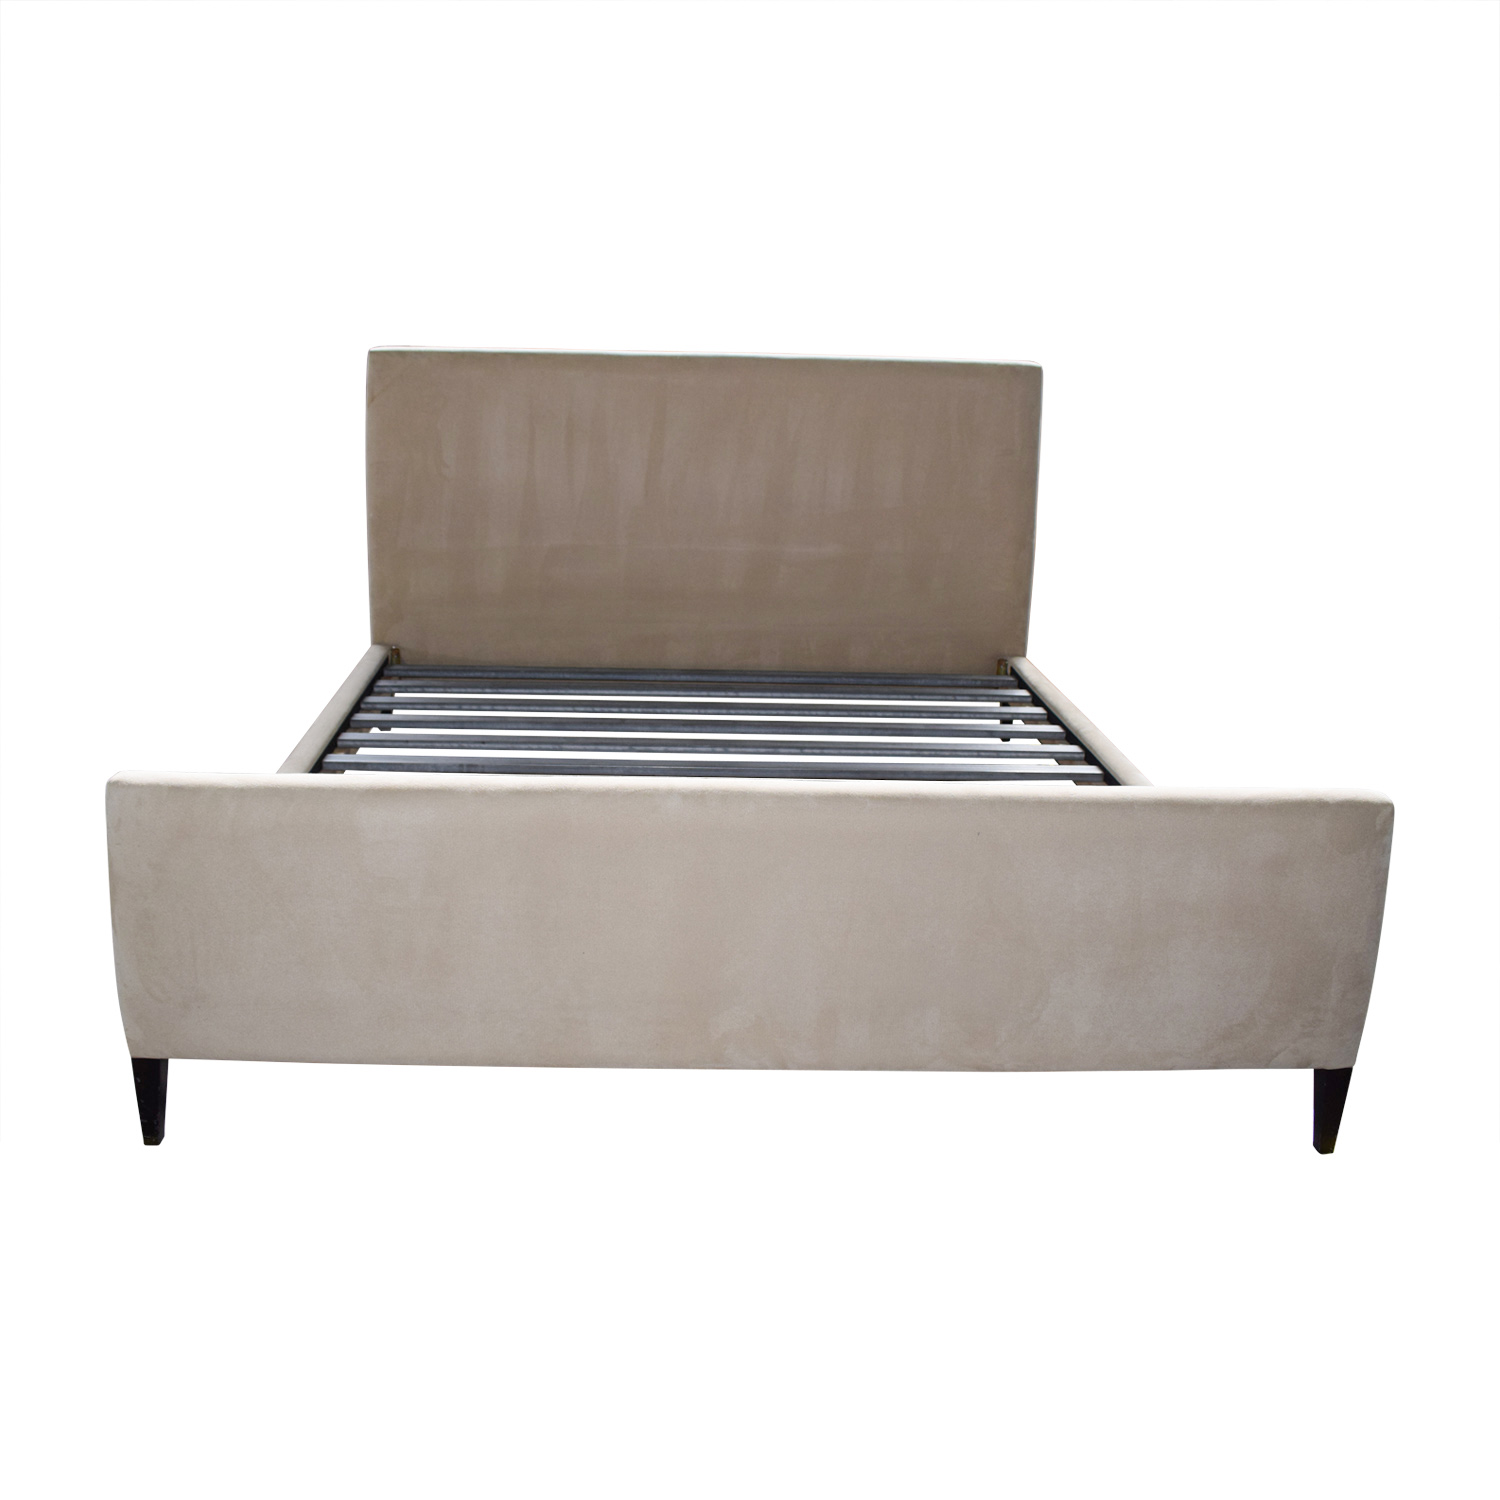 Room & Board Room & Board Tan King Bed Frame second hand